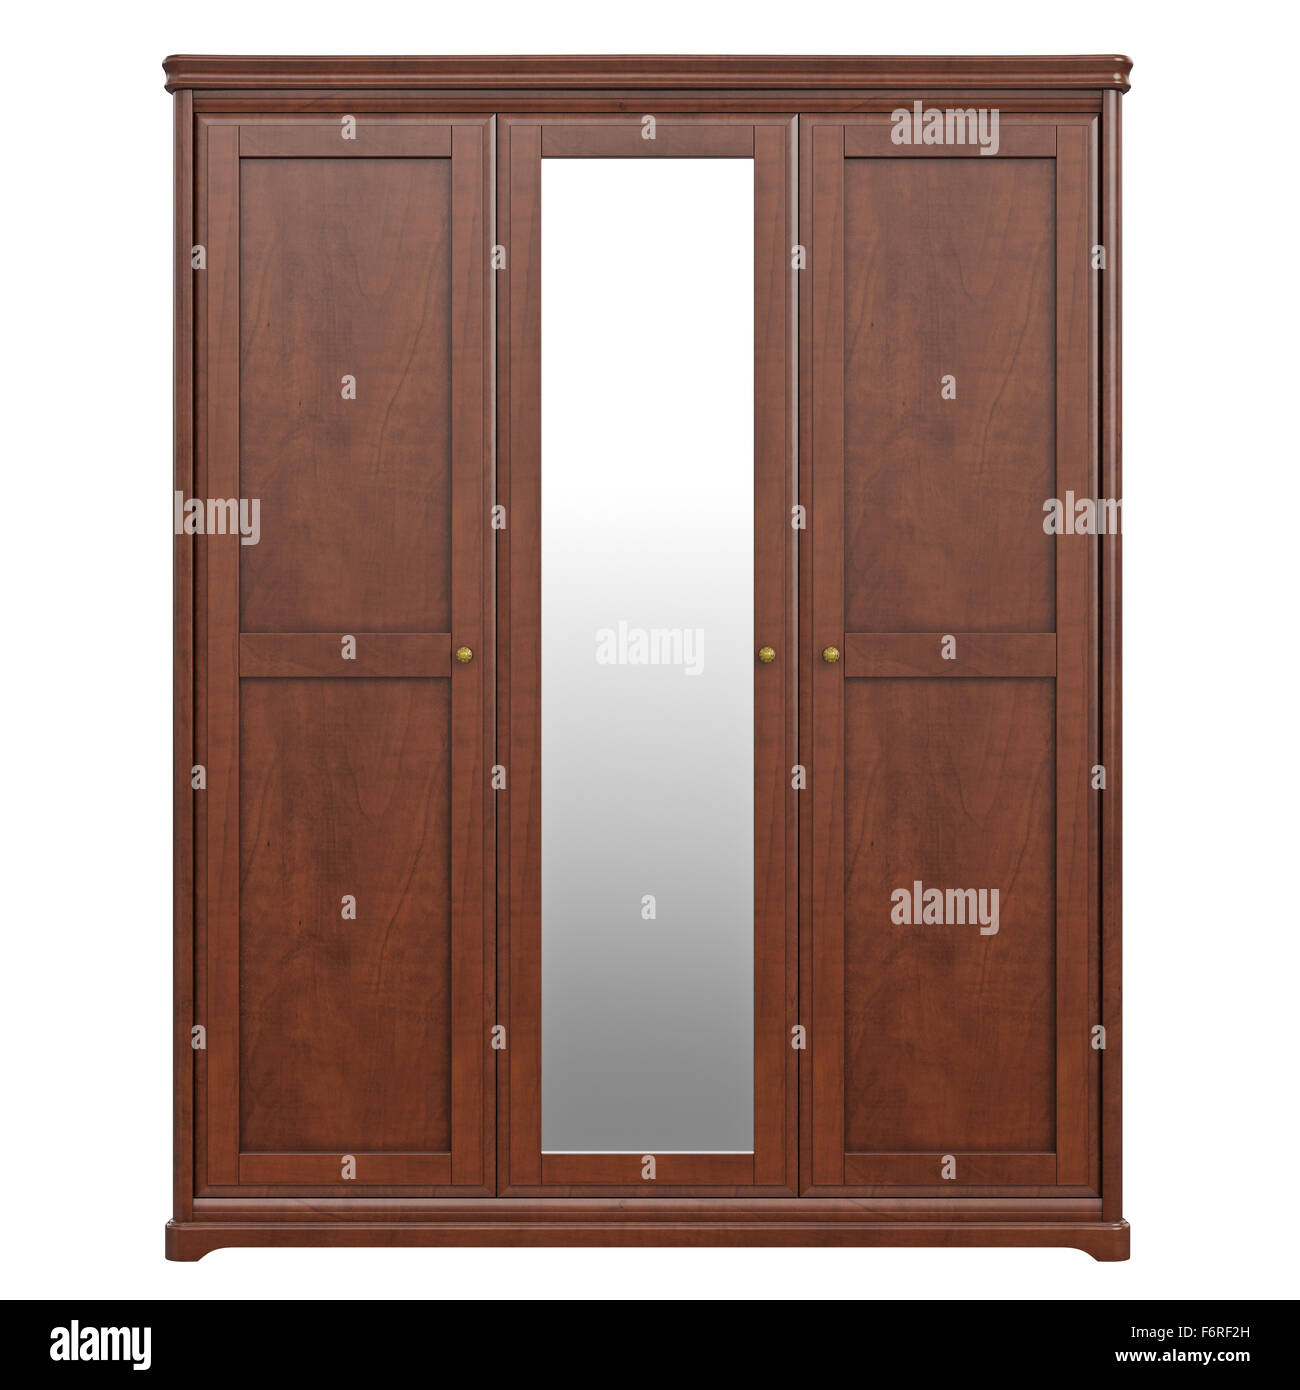 Cabinet wardrobe, front view Stock Photo, Royalty Free Image ... for Wardrobe Front View  183qdu